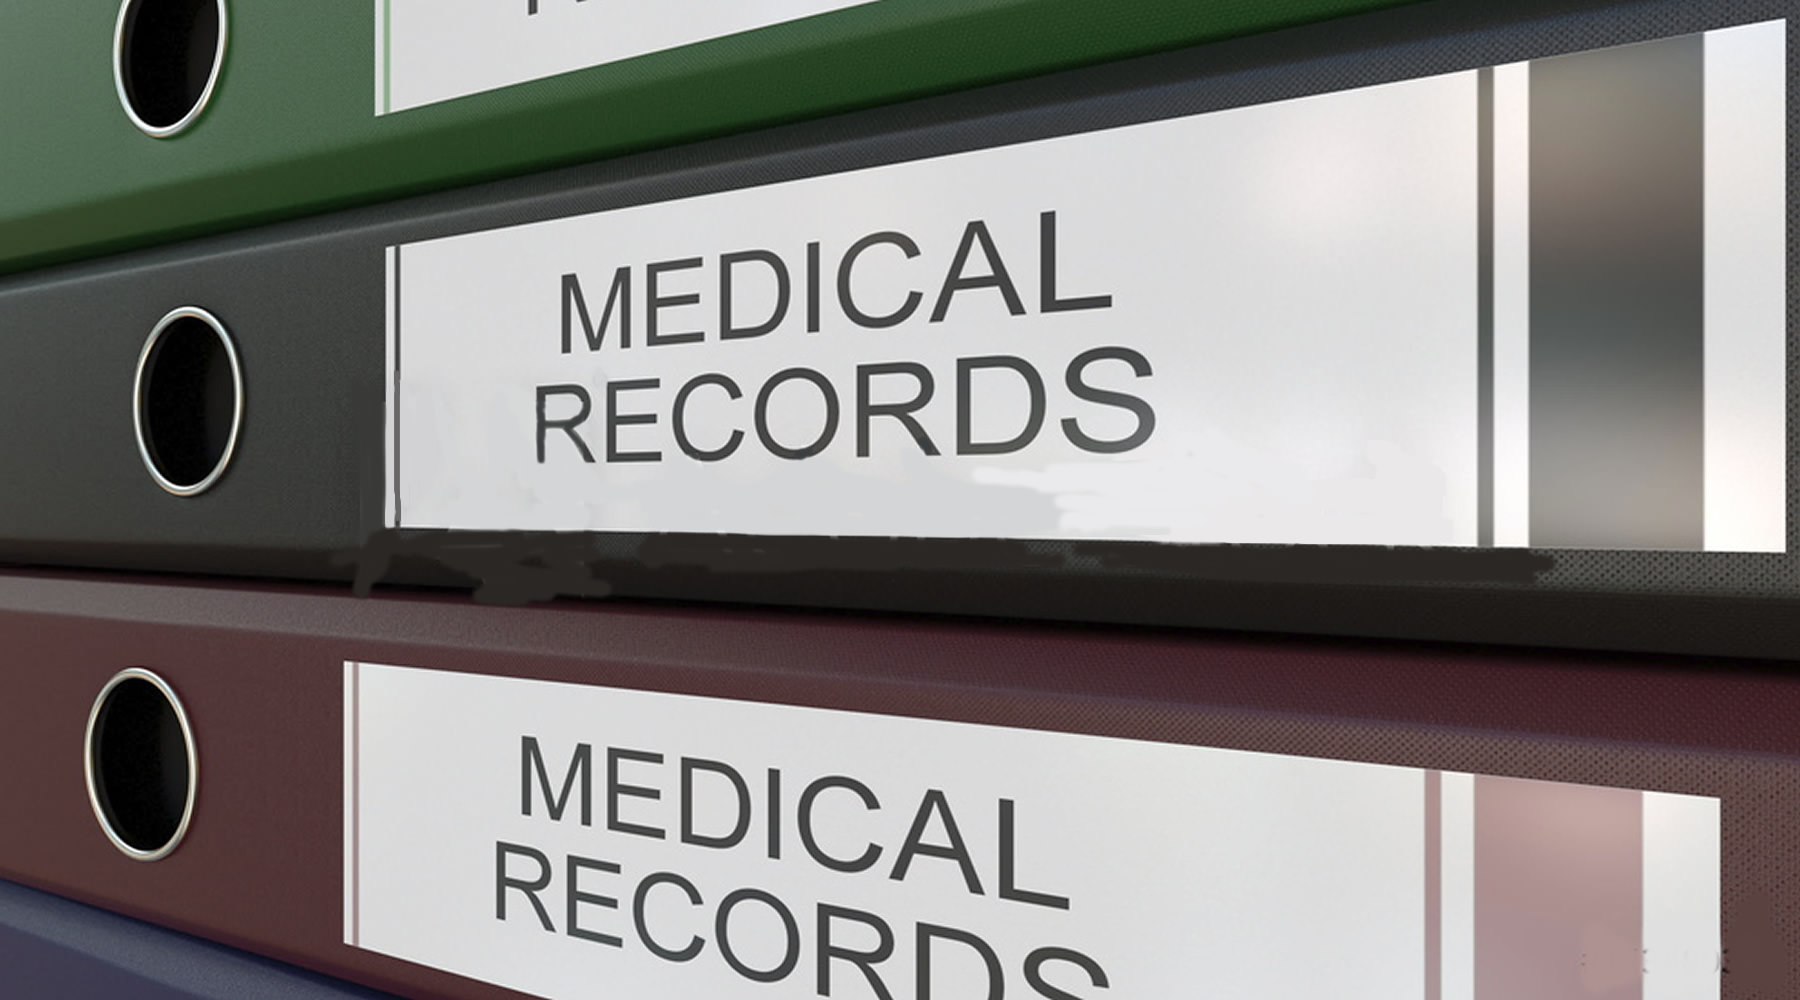 Medical records filed on shelves